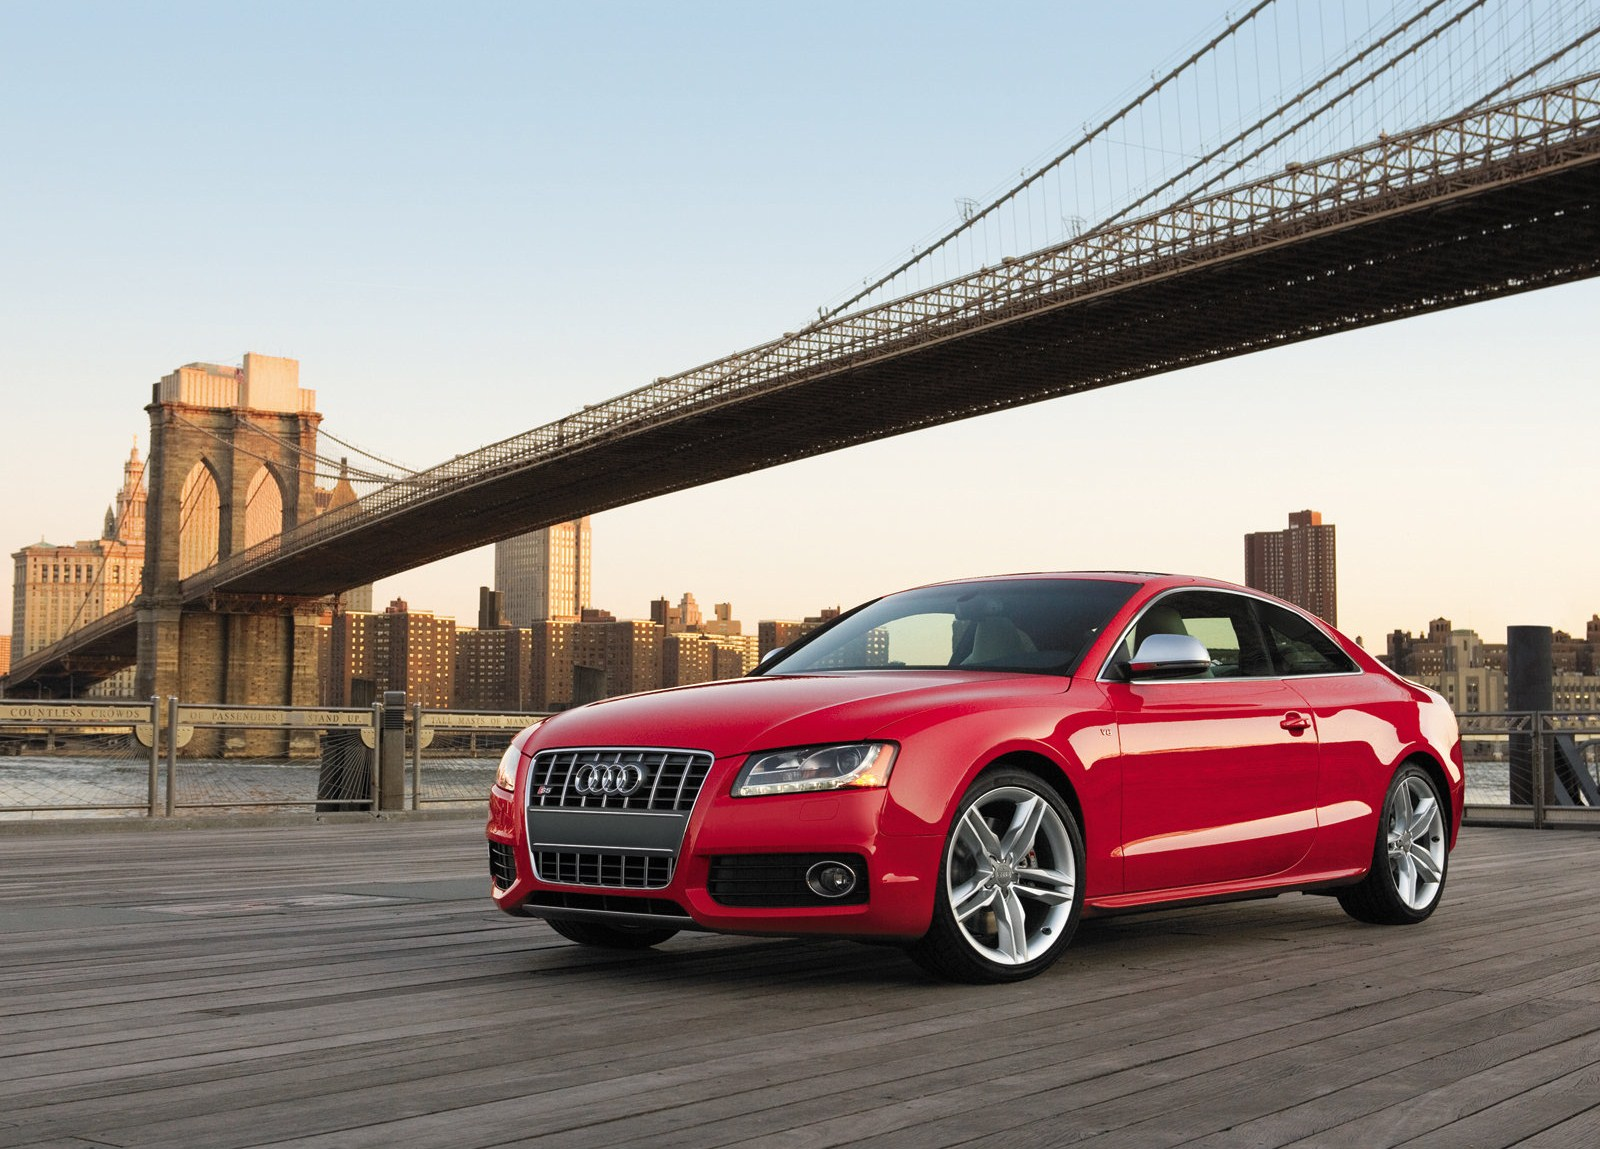 Best wallpapers audi s5 wallpapers - Car wallpapers for galaxy s5 ...